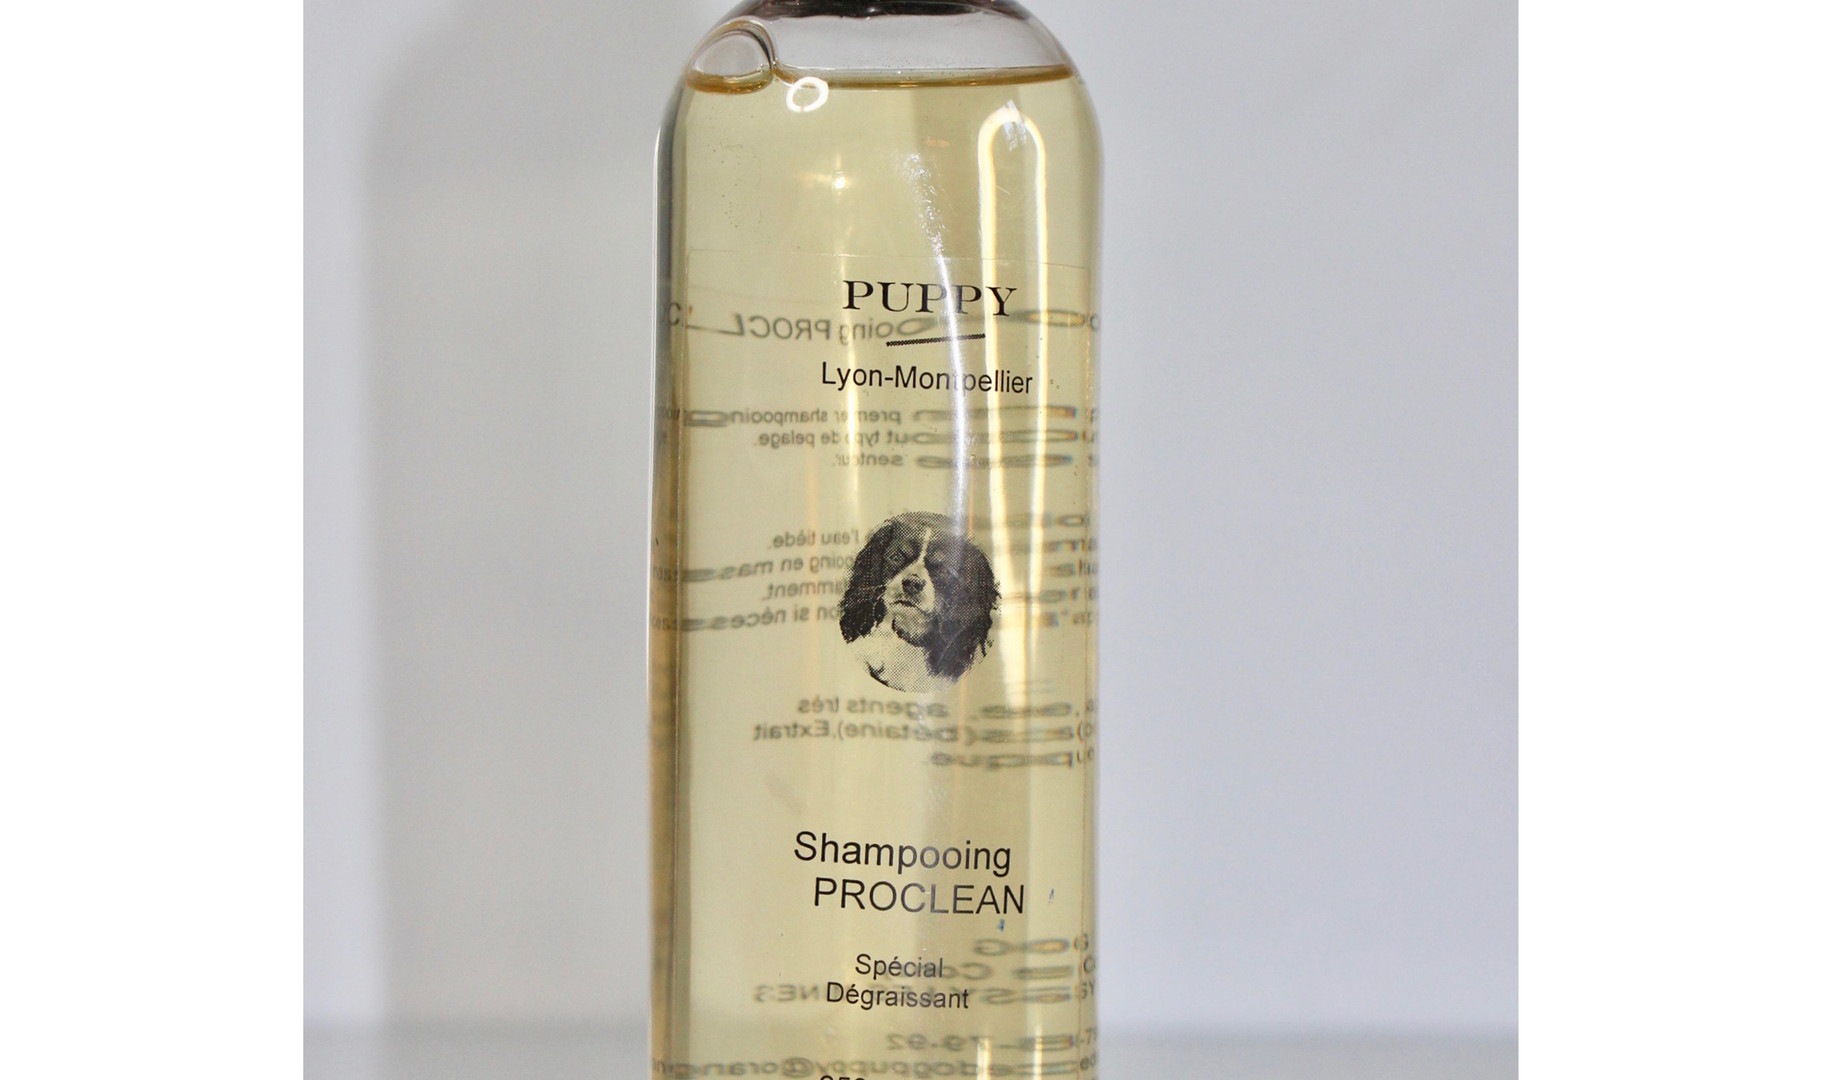 Proclean shampoing